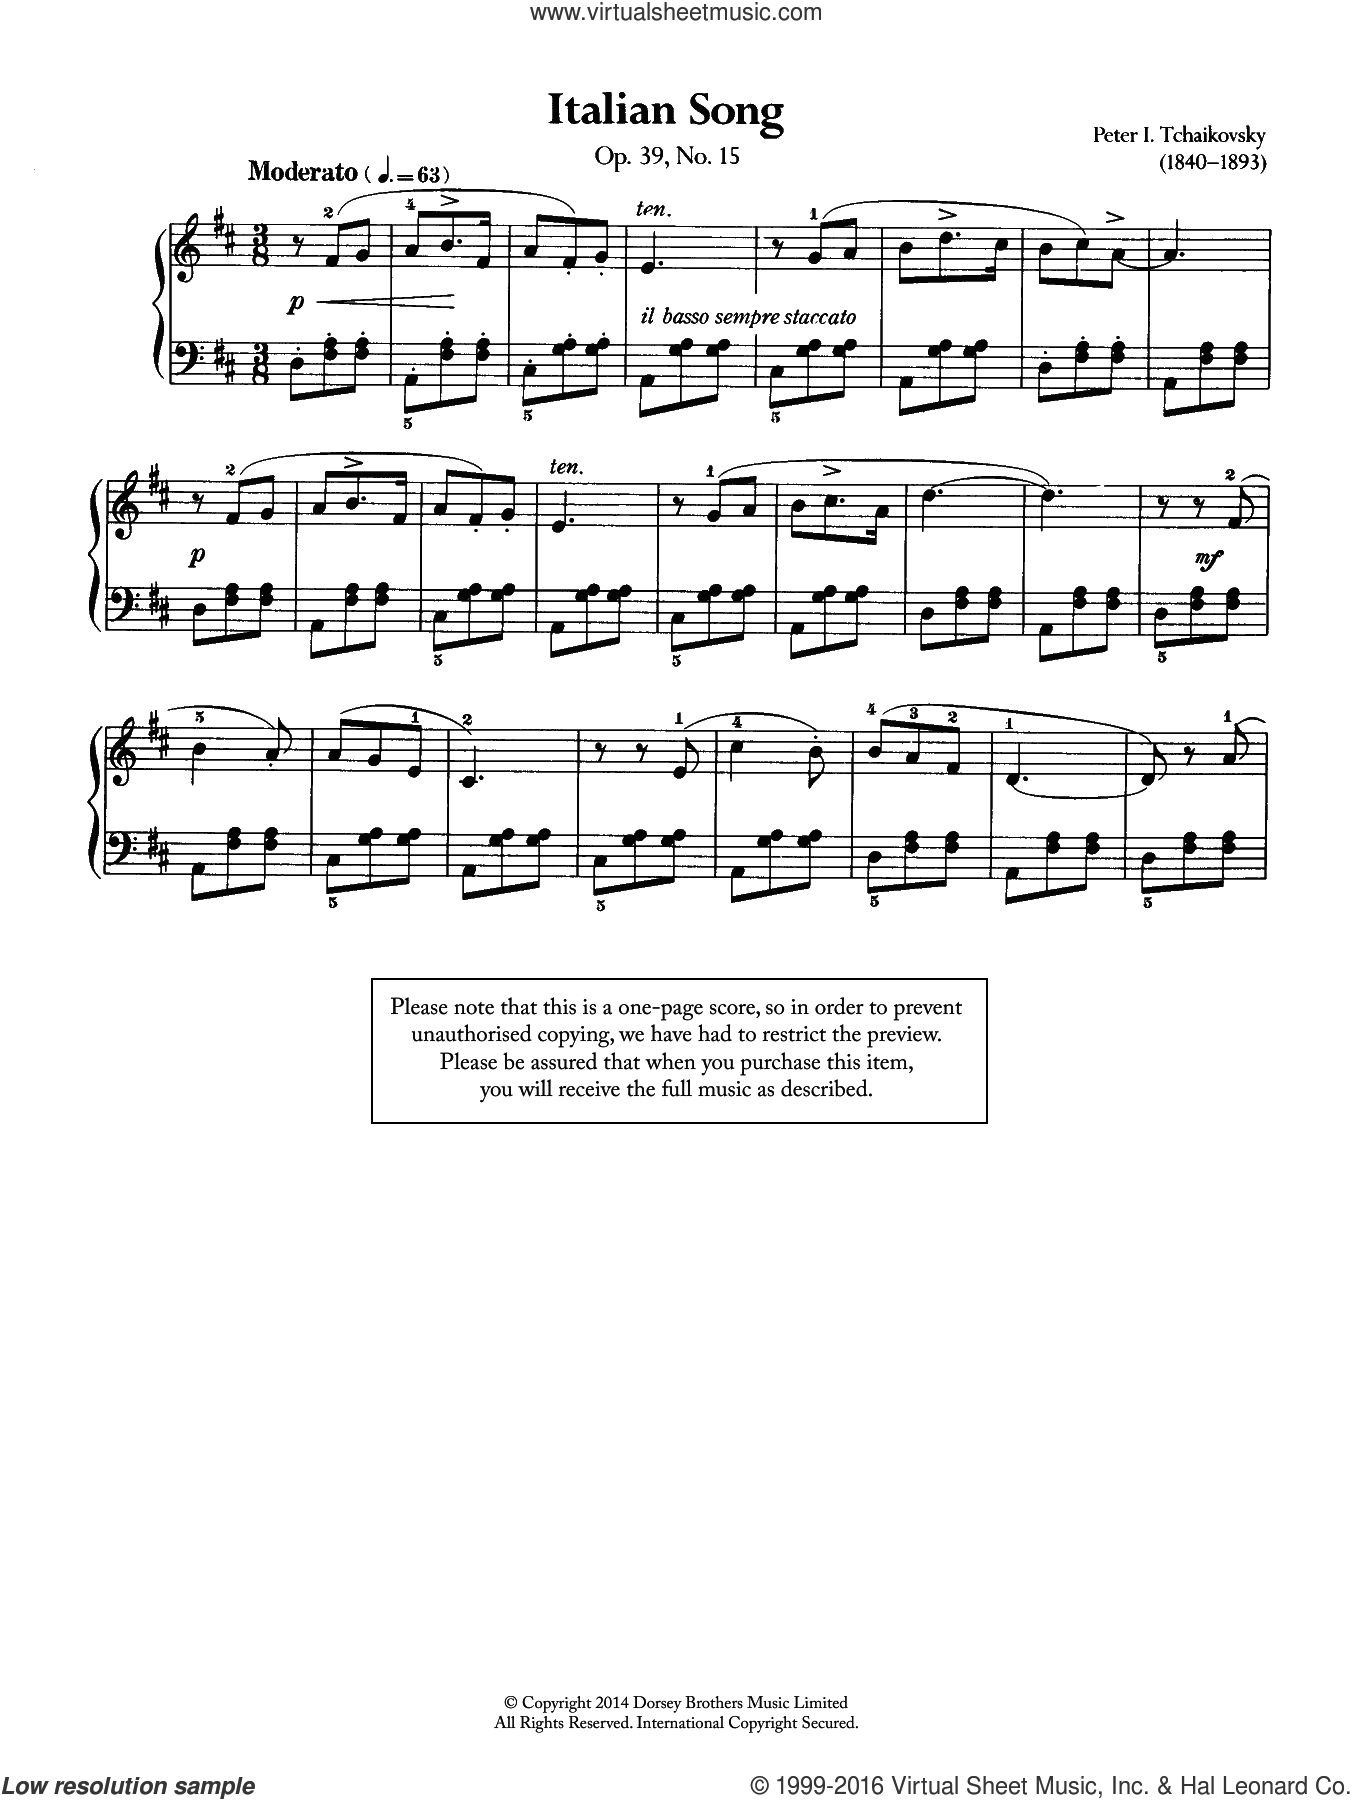 Italian Song, Op.39 No.15 sheet music for piano solo by Pyotr Ilyich Tchaikovsky, classical score, intermediate. Score Image Preview.